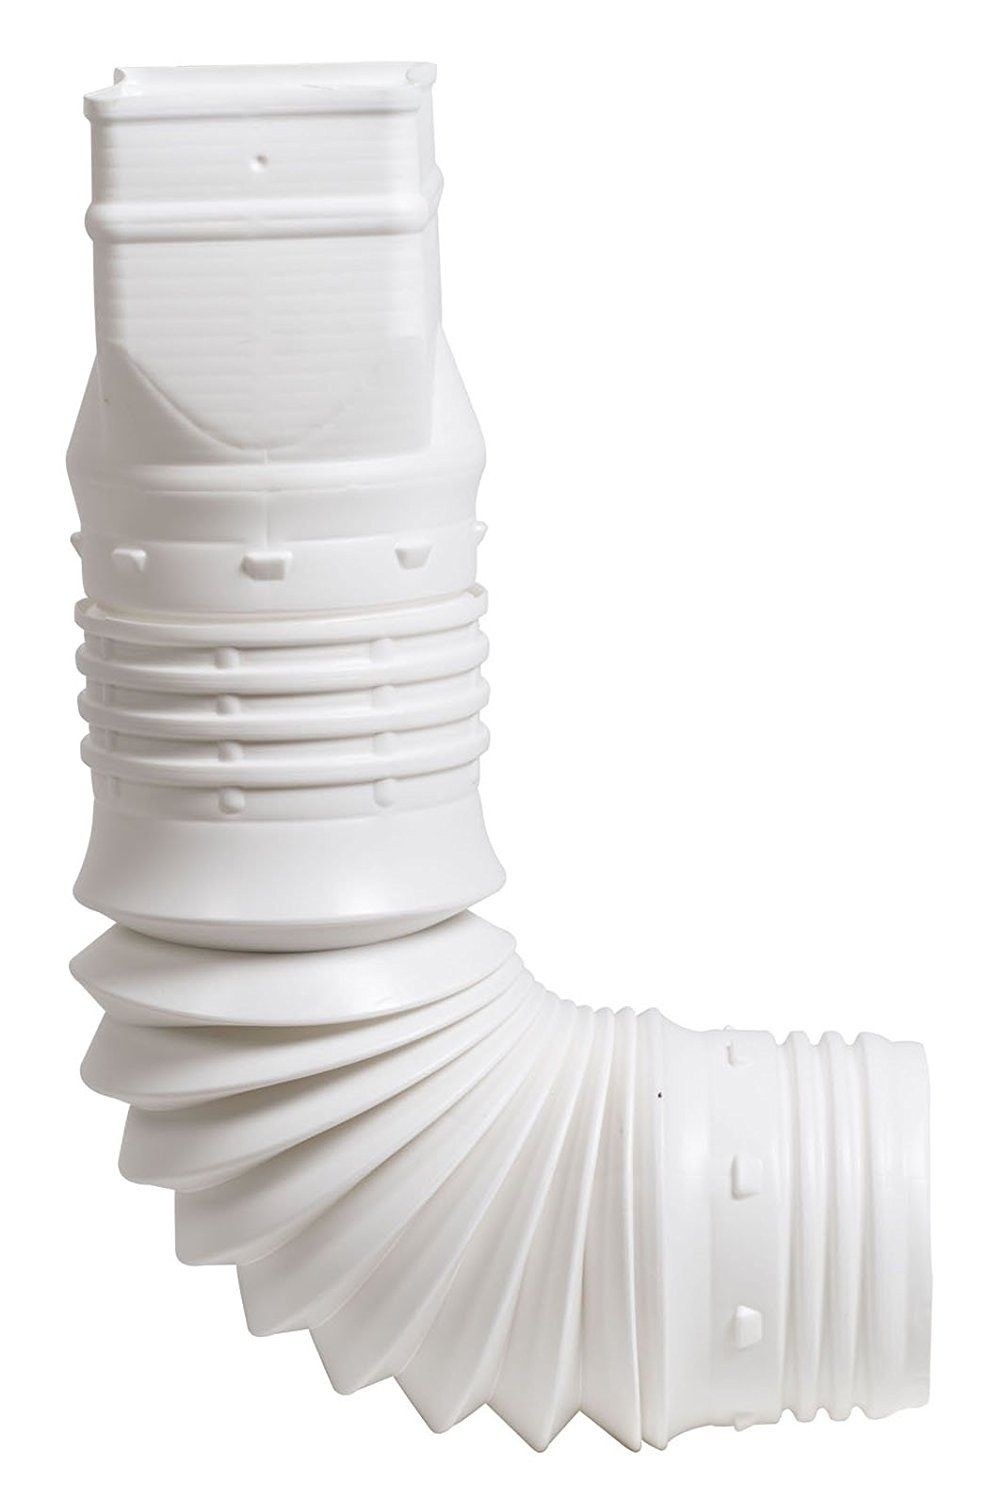 Flex Drain 53127 Flexible Downspout Extension Adapter 3 By 4 By 4 Inch White Visit The Image Link M Downspout Adapter Downspout Gutter Downspout Extension